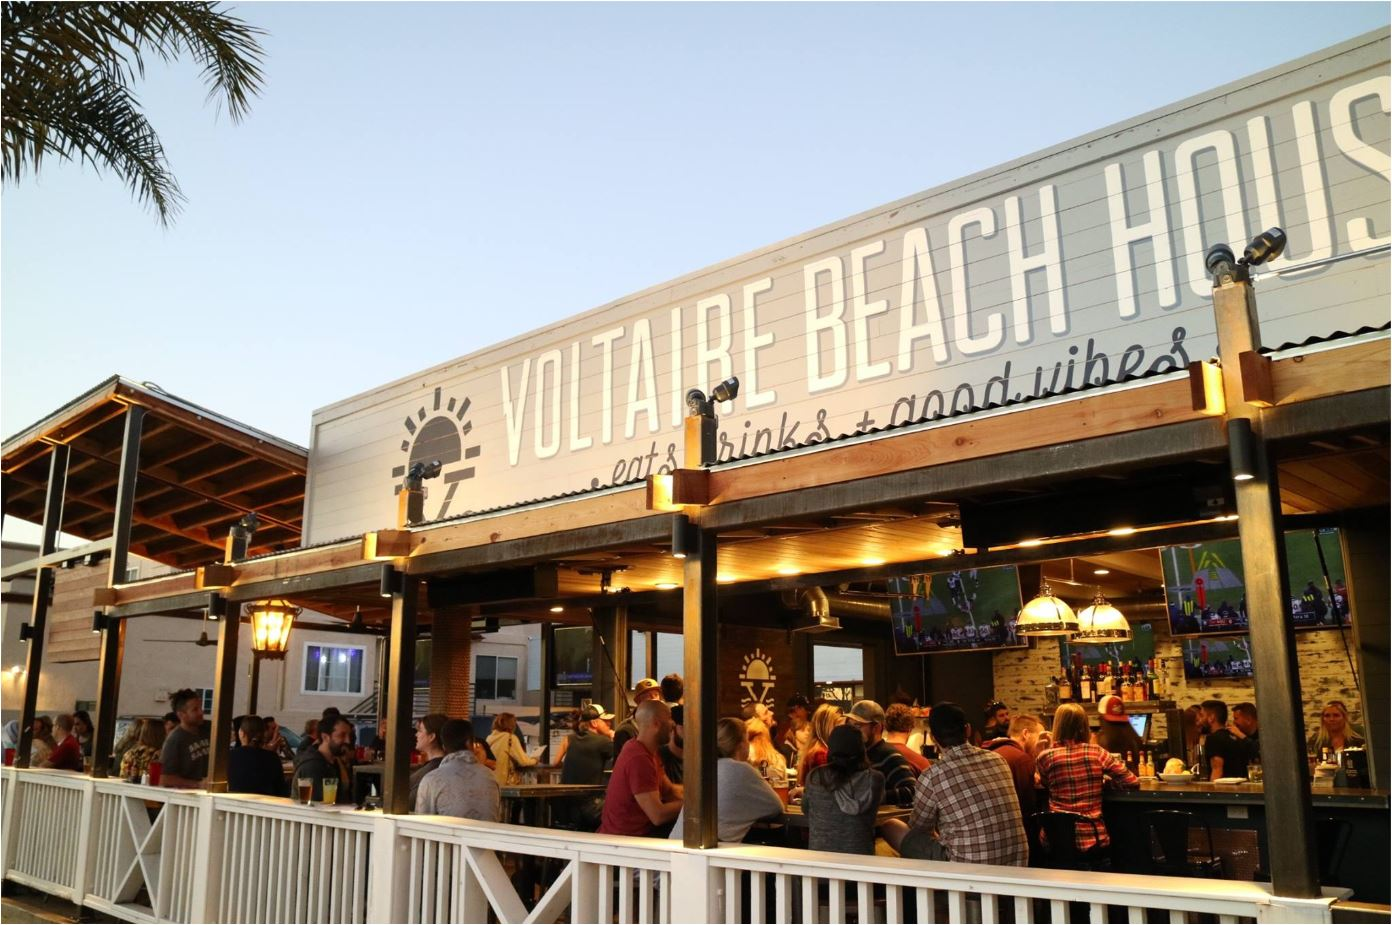 North OB Committee Mixer/Happy Hour at Voltaire Beach House